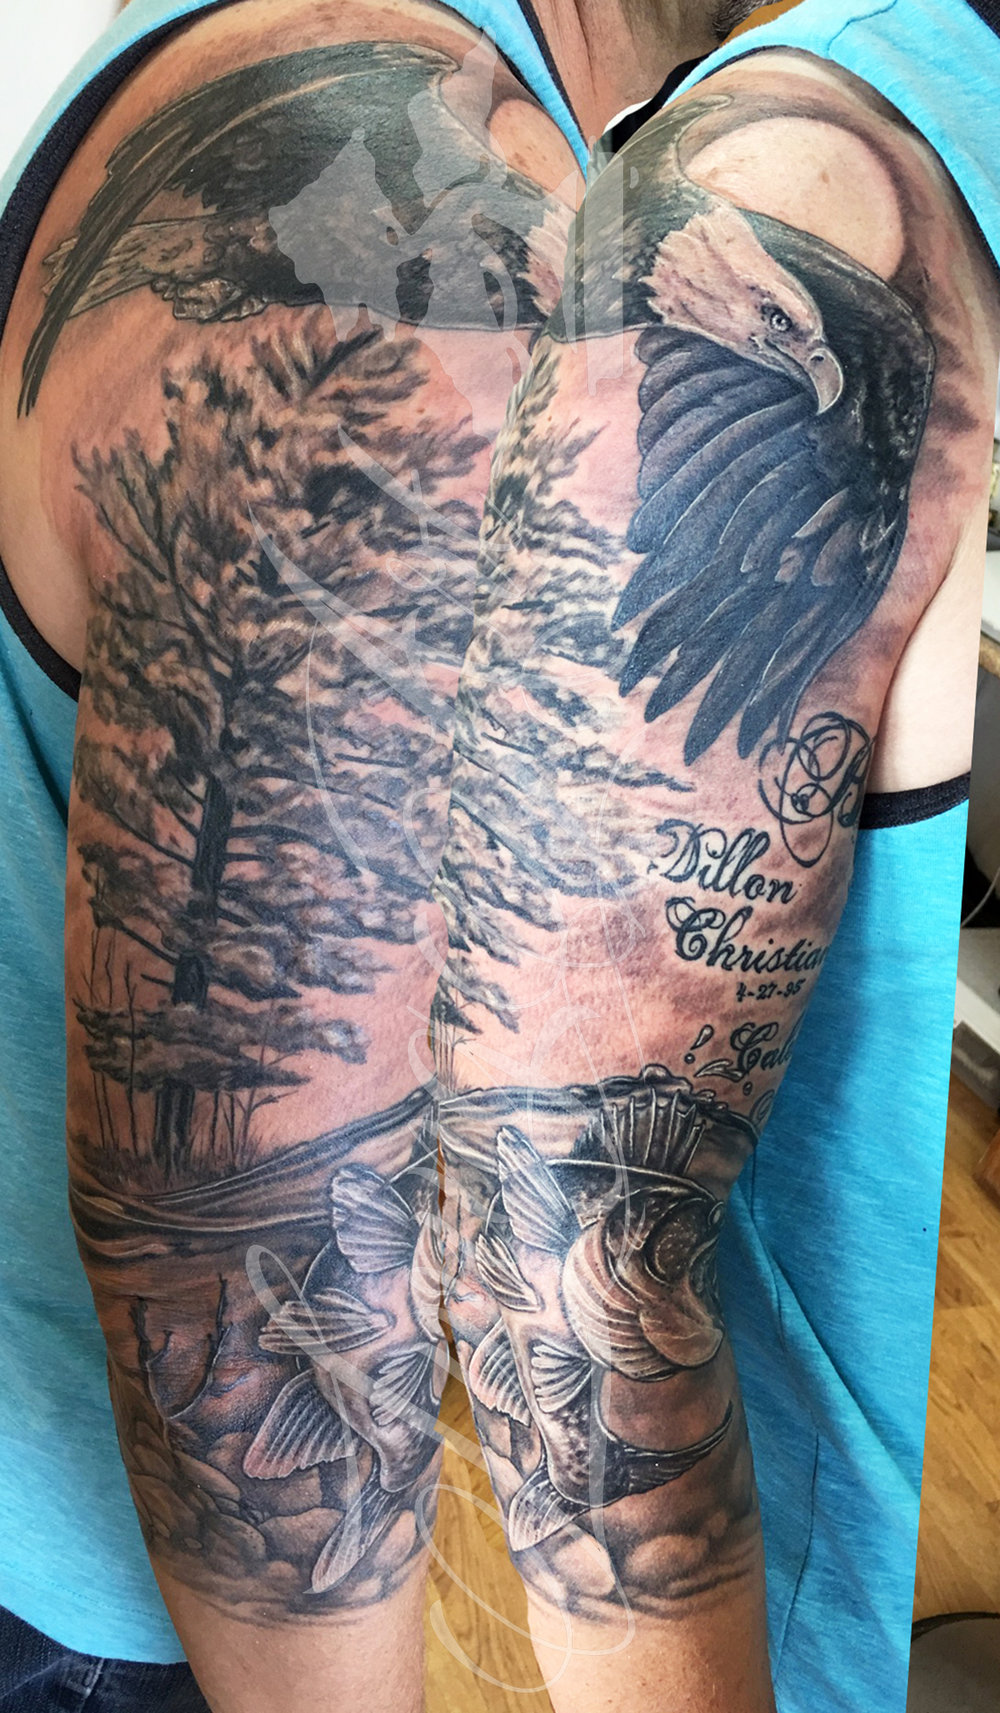 chris owen tattoo_minnesota tattoo_black and grey sleeve tattoo.jpg